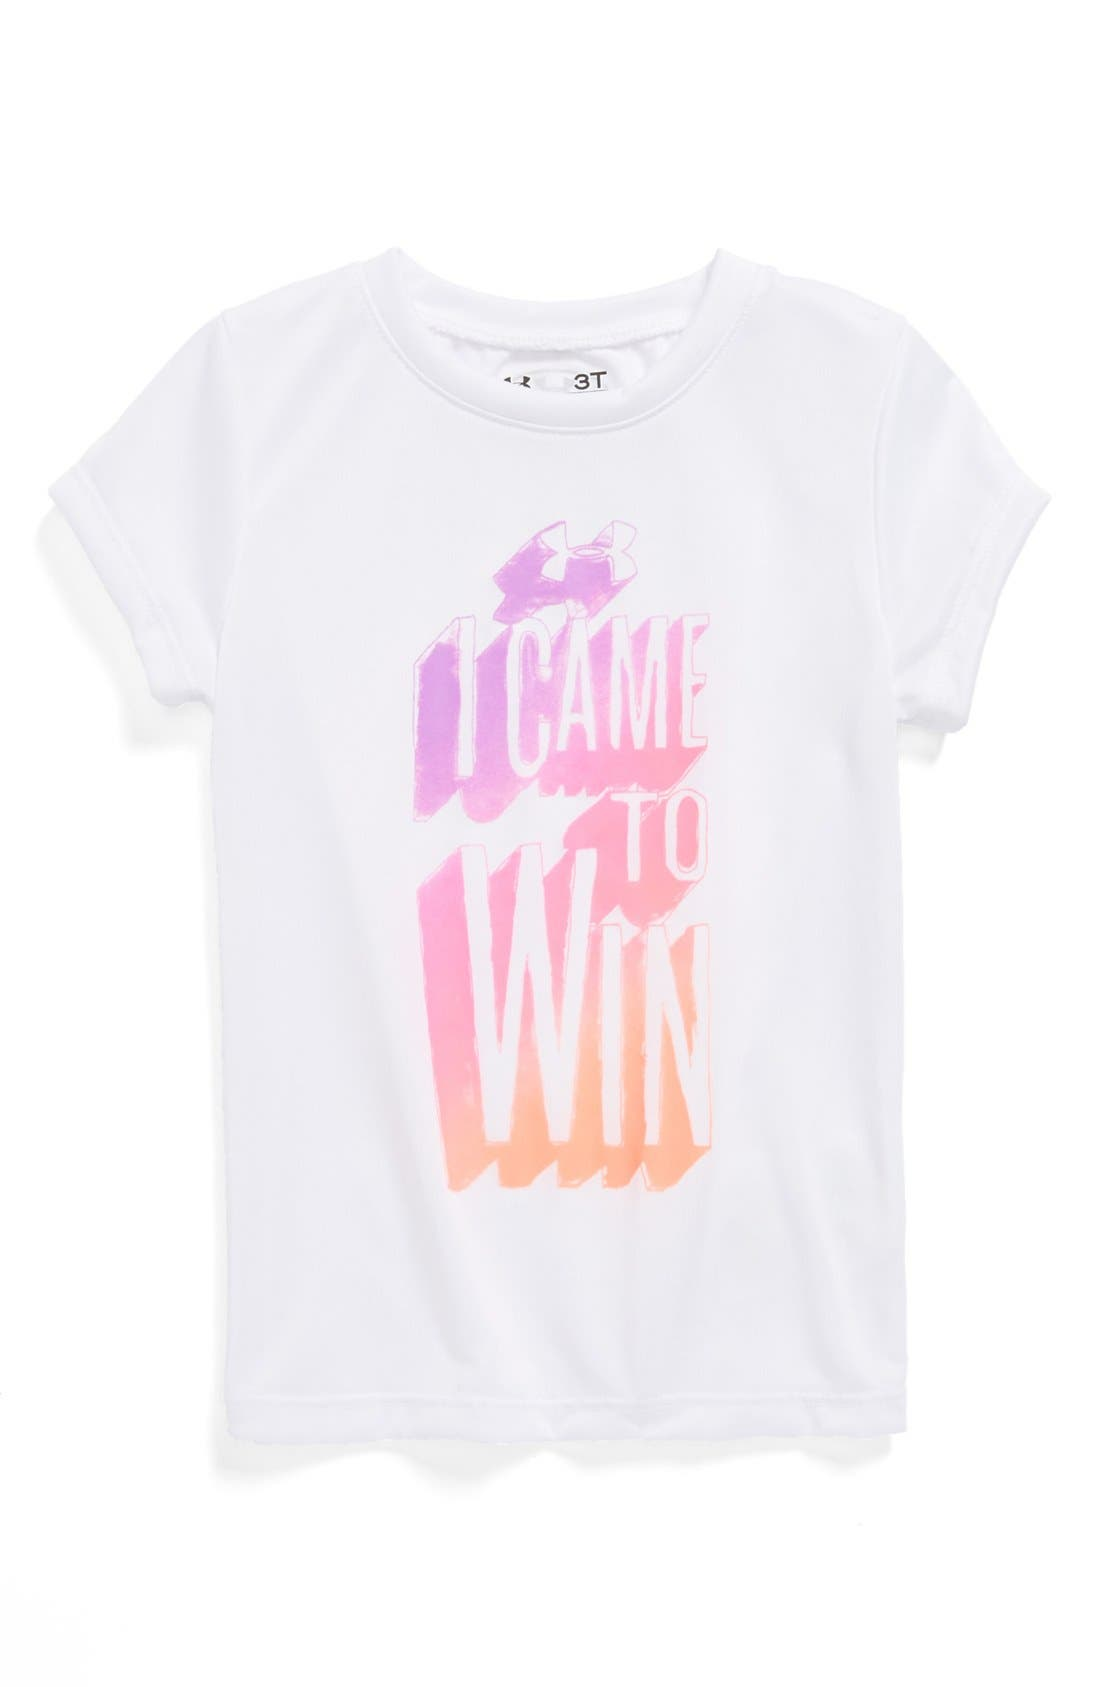 Alternate Image 1 Selected - Under Armour 'I Came to Win' Tee (Toddler Girls)